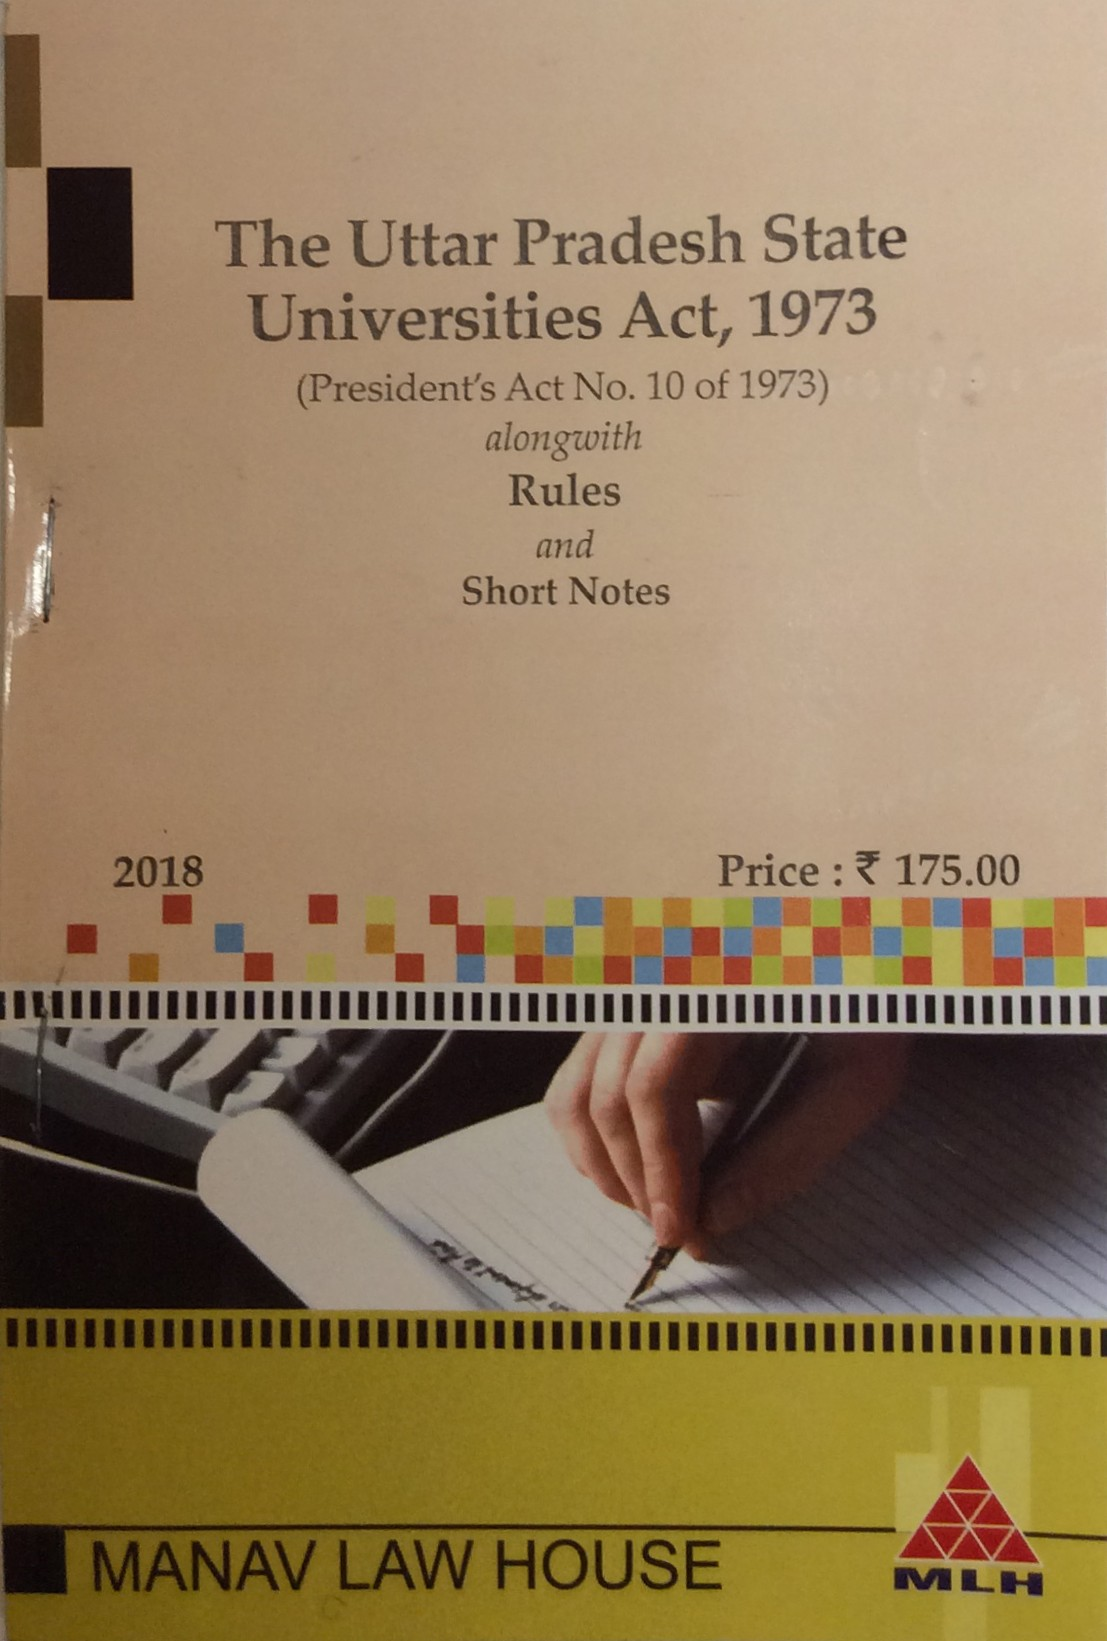 U.P. State Universities Act, 1973 with Rules